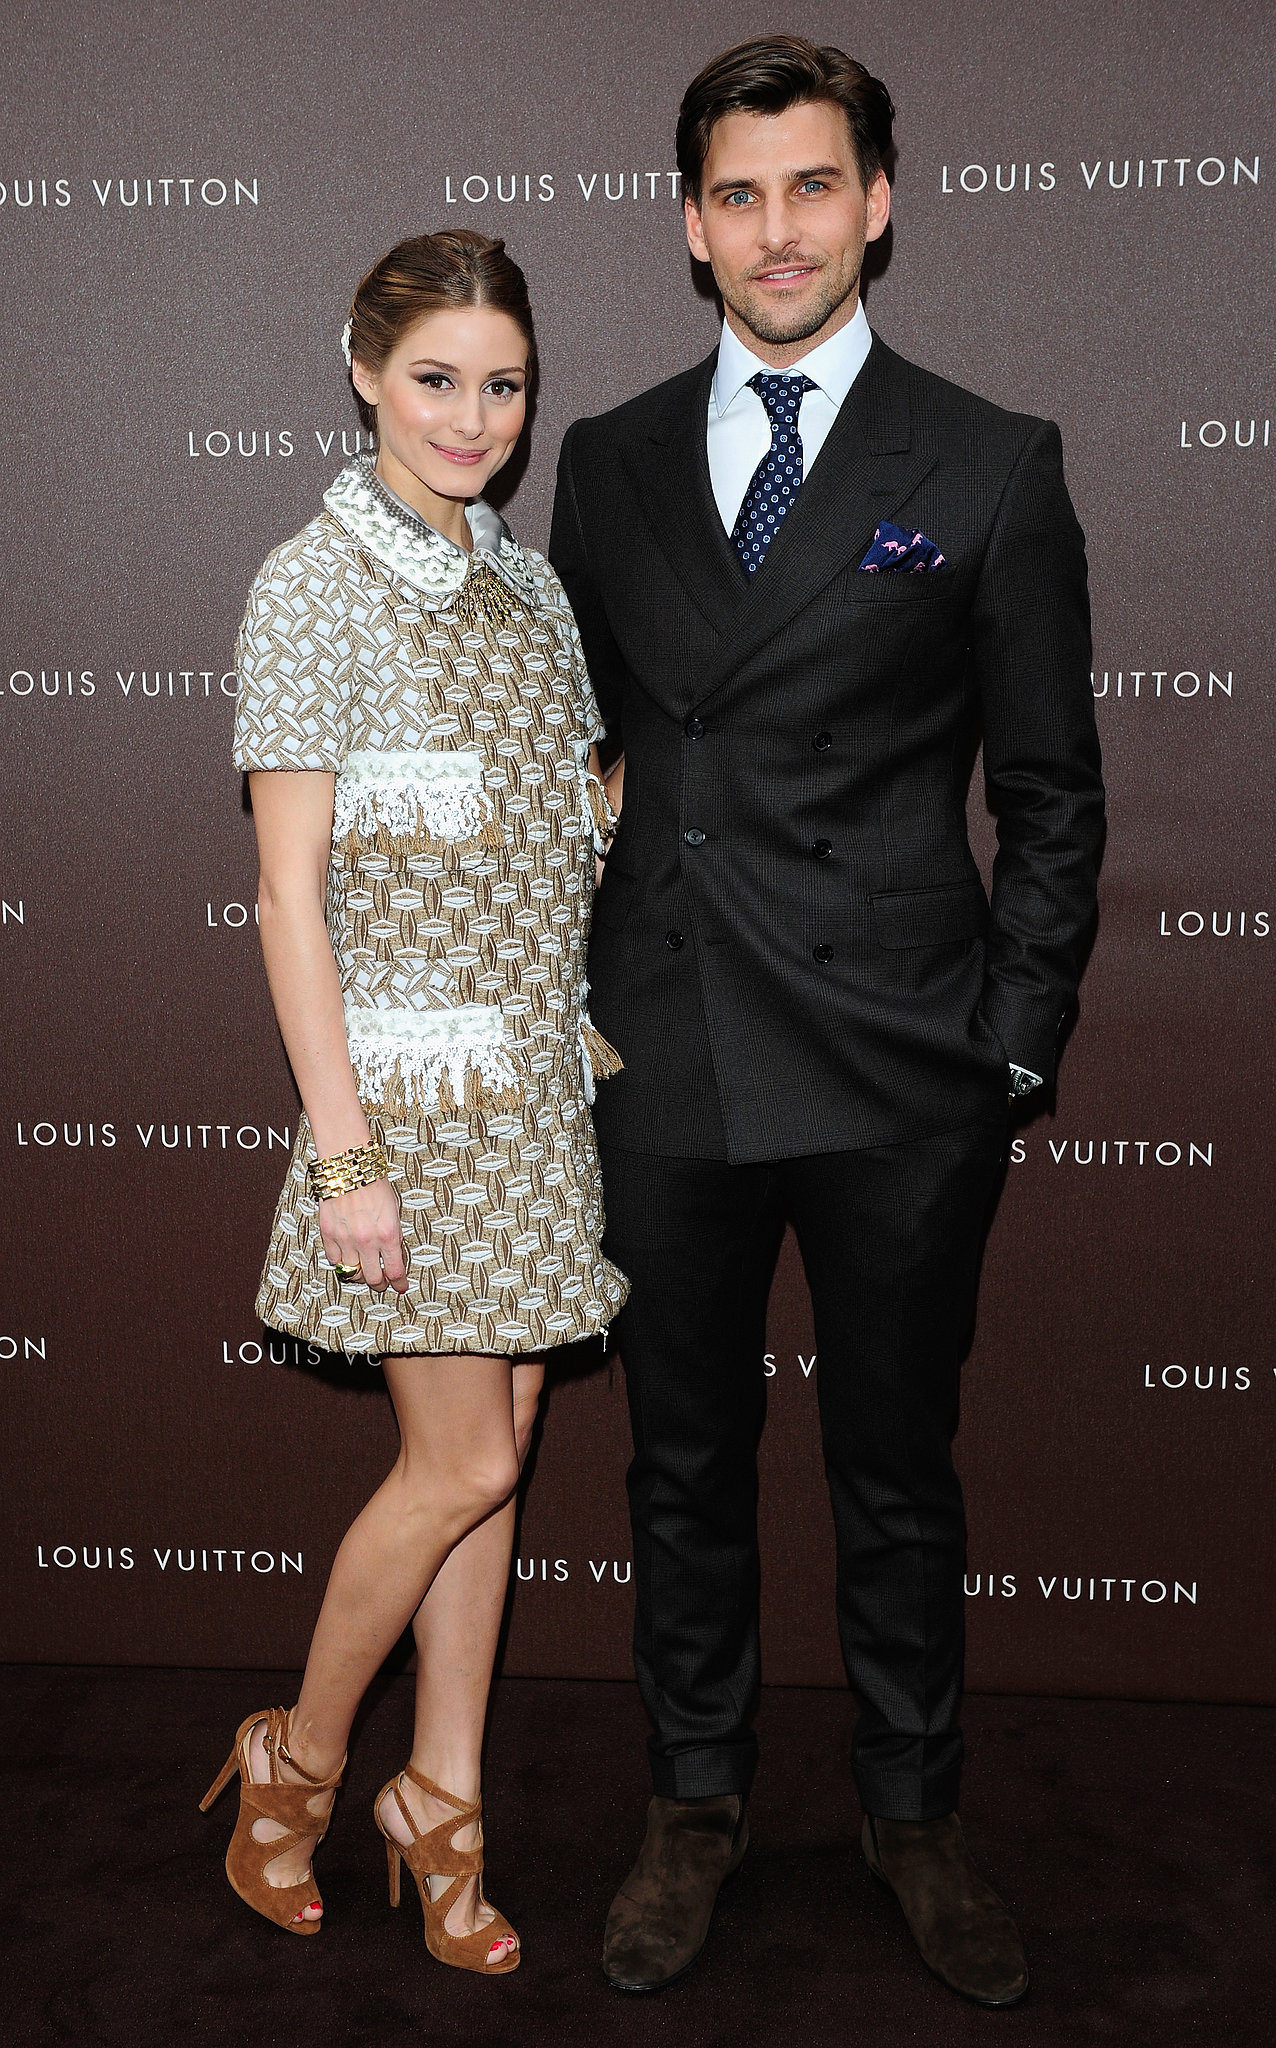 At the Louis Vuitton Maison opening in Munich, Olivia Palermo — pictured with boyfriend Johannes Huebl — mixed high with low in a metallic collared Louis Vuitton Resort '13 dress and tan suede Zara sandals.